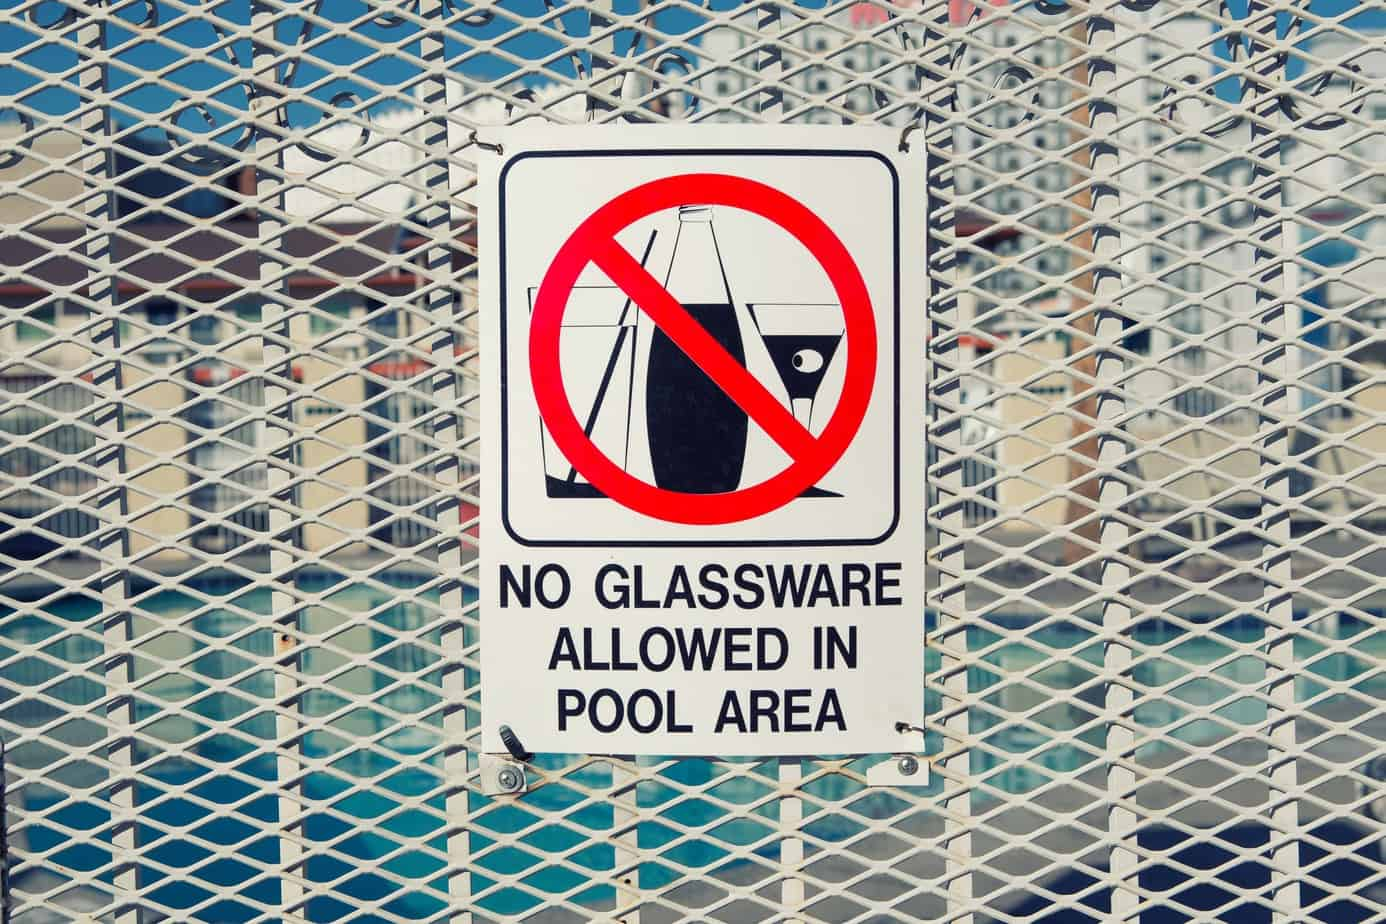 Sign that says No Glassware allowed in the pool area.